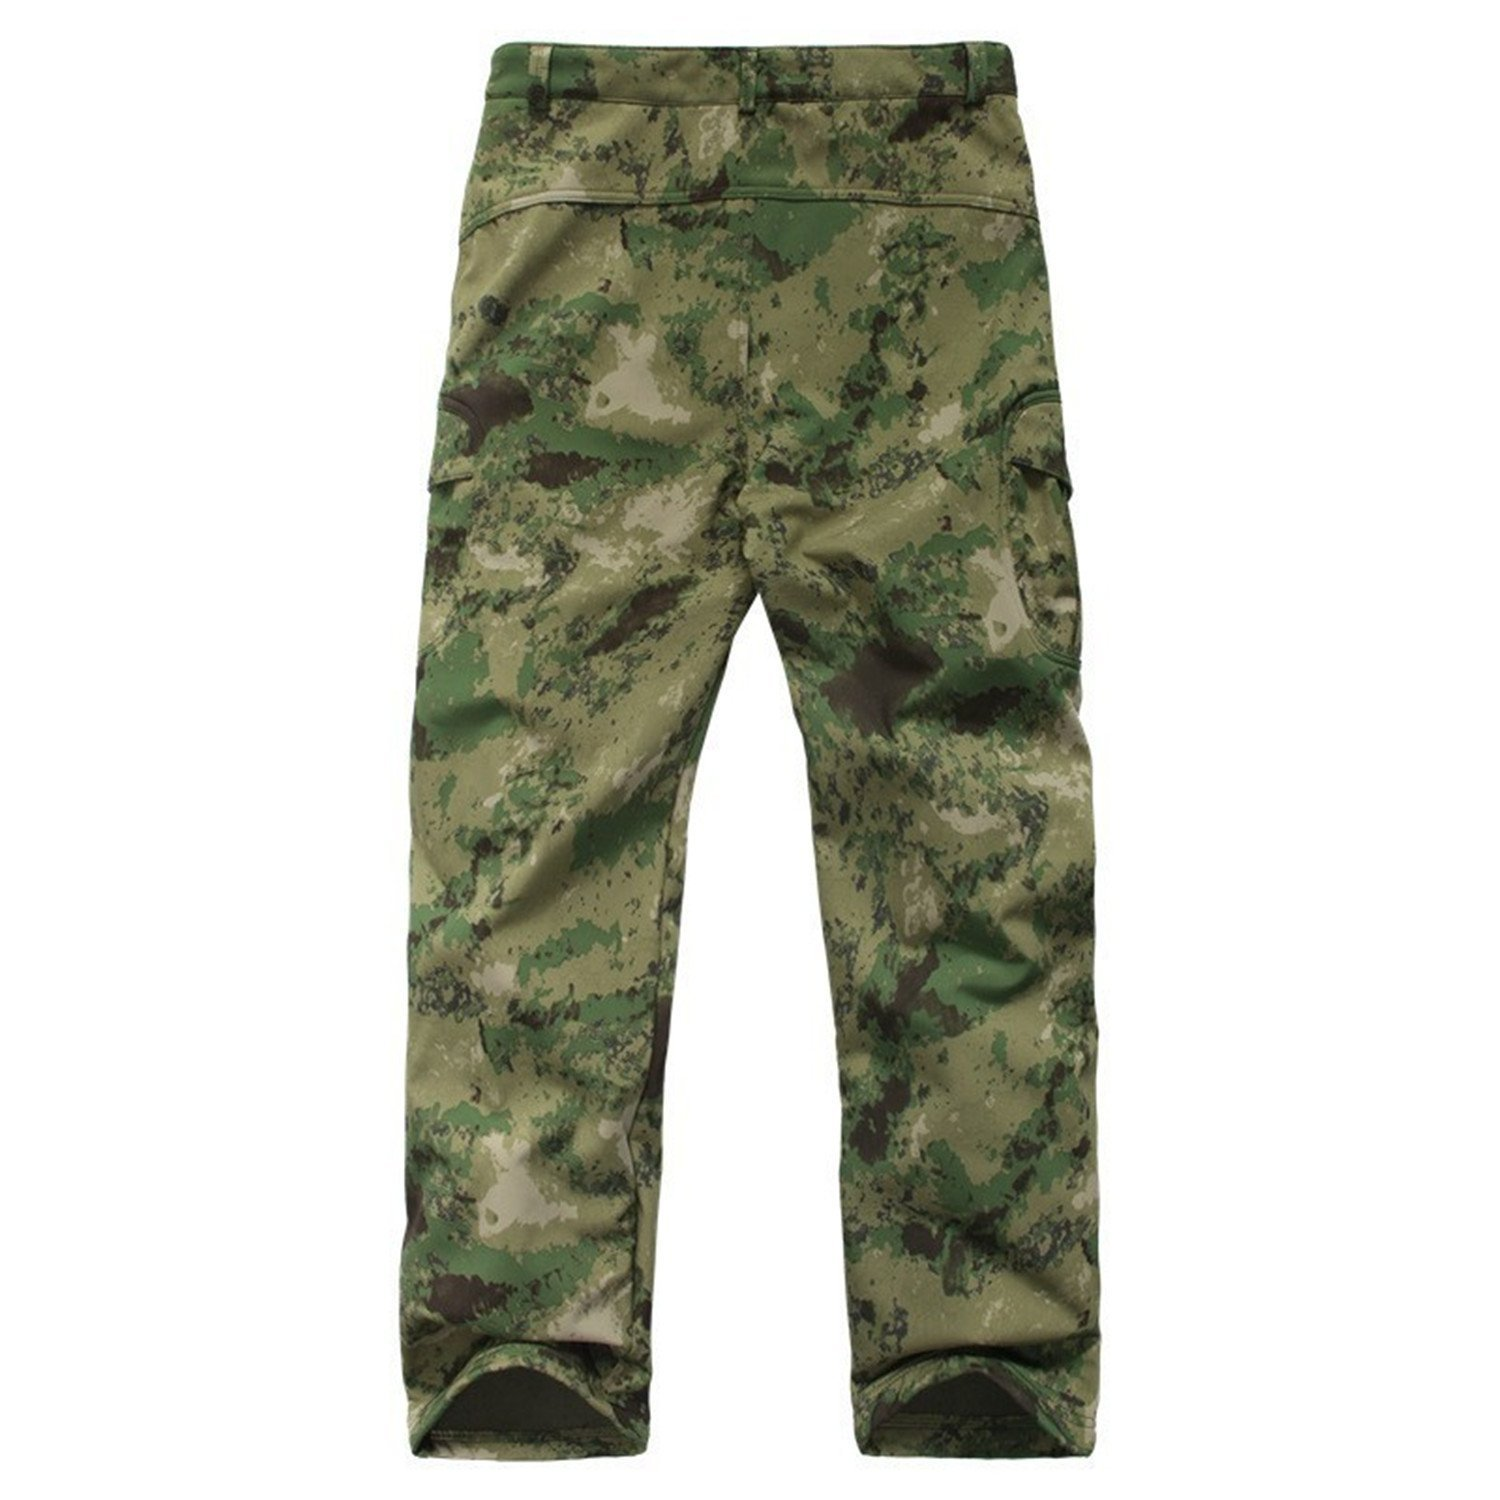 Toping Fine Pants Shark Skin Waterproof Windproof Camouflage Pants Men Fleece Trousers Military Army Pant Green CamouflageXX-Large